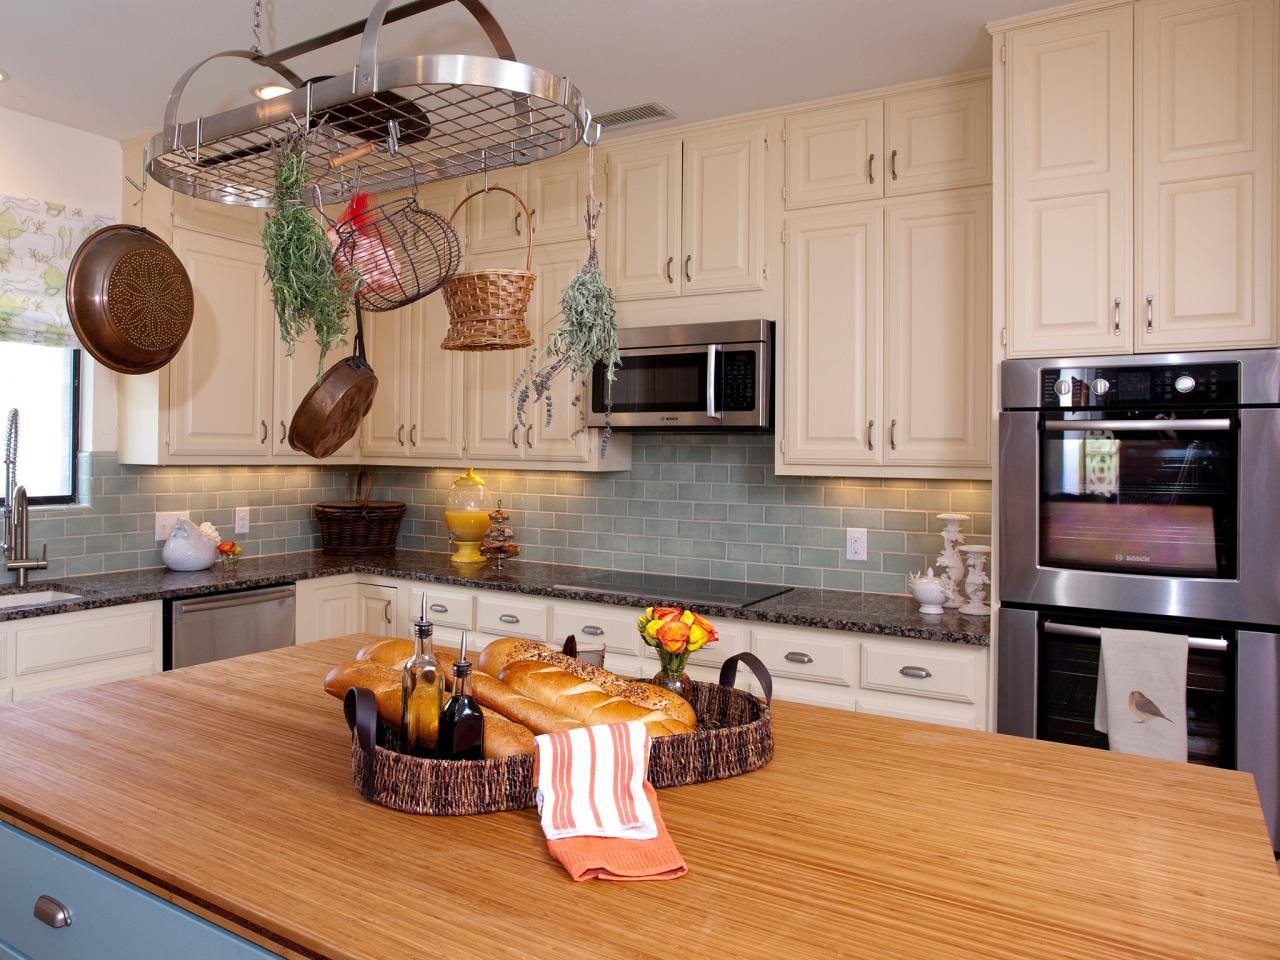 Kitchen Island Top Ideas kitchen island countertops: pictures & ideas from hgtv | hgtv